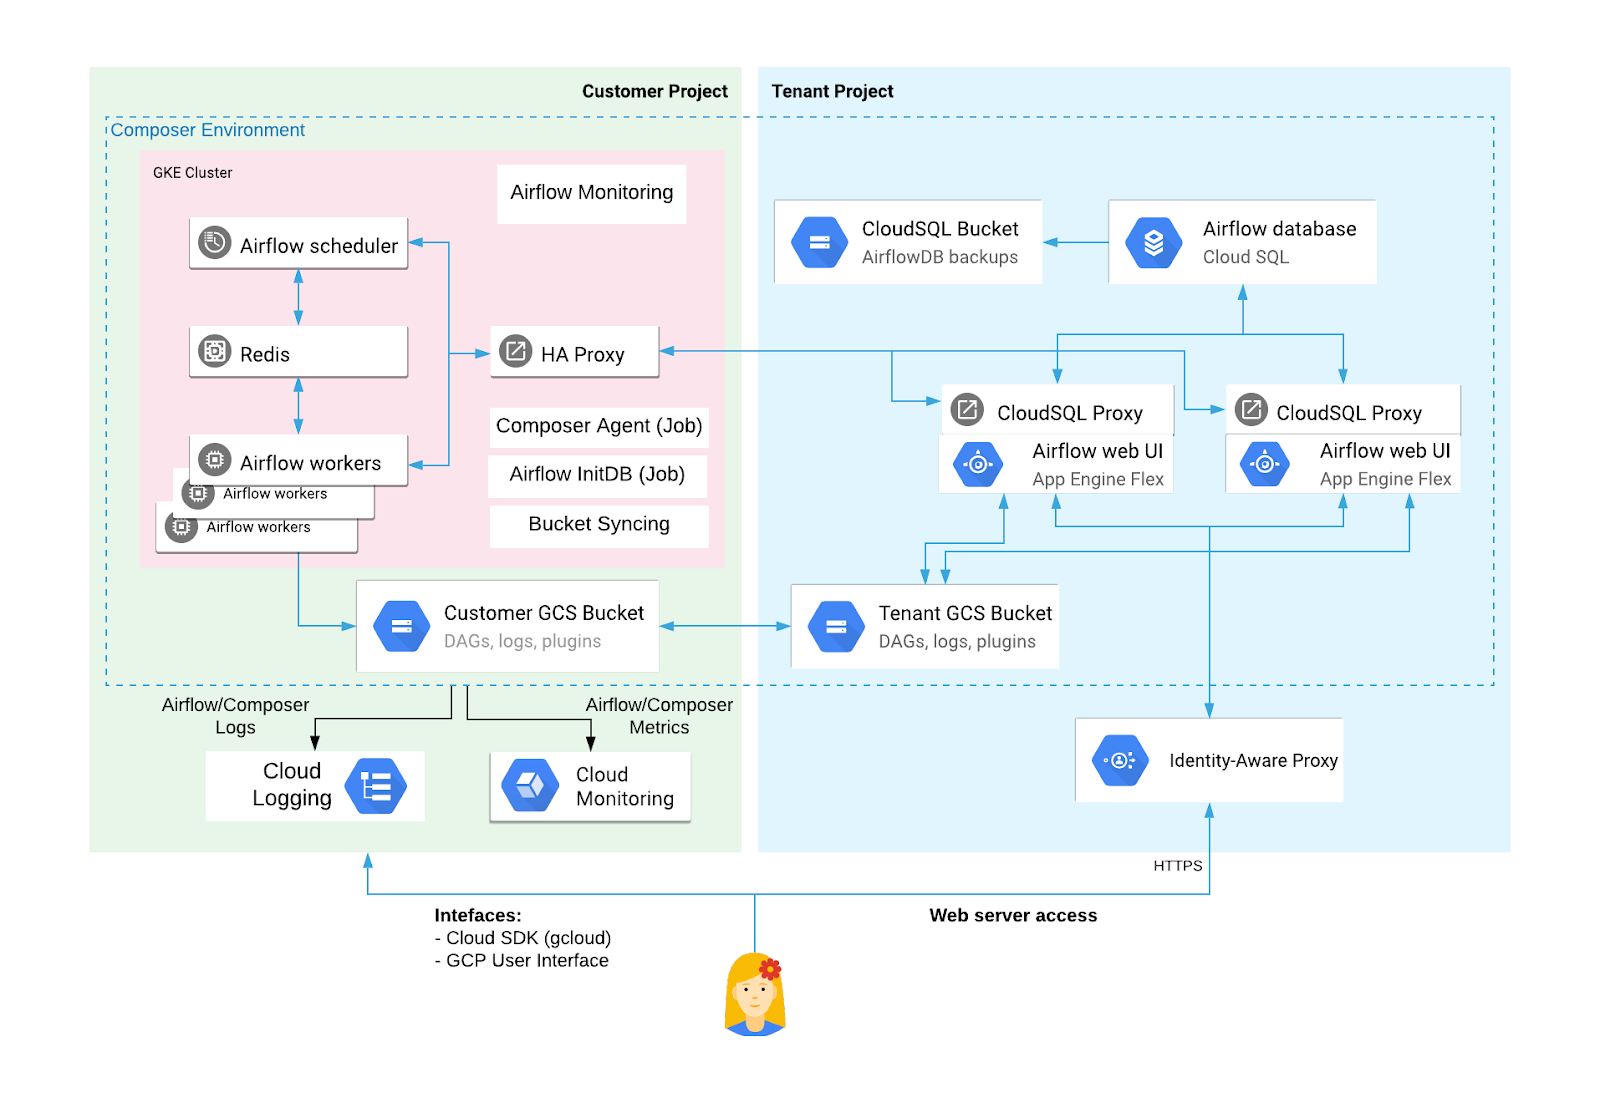 DRS Cloud Composer environment resources in the tenant project and the customer project (click to enlarge)